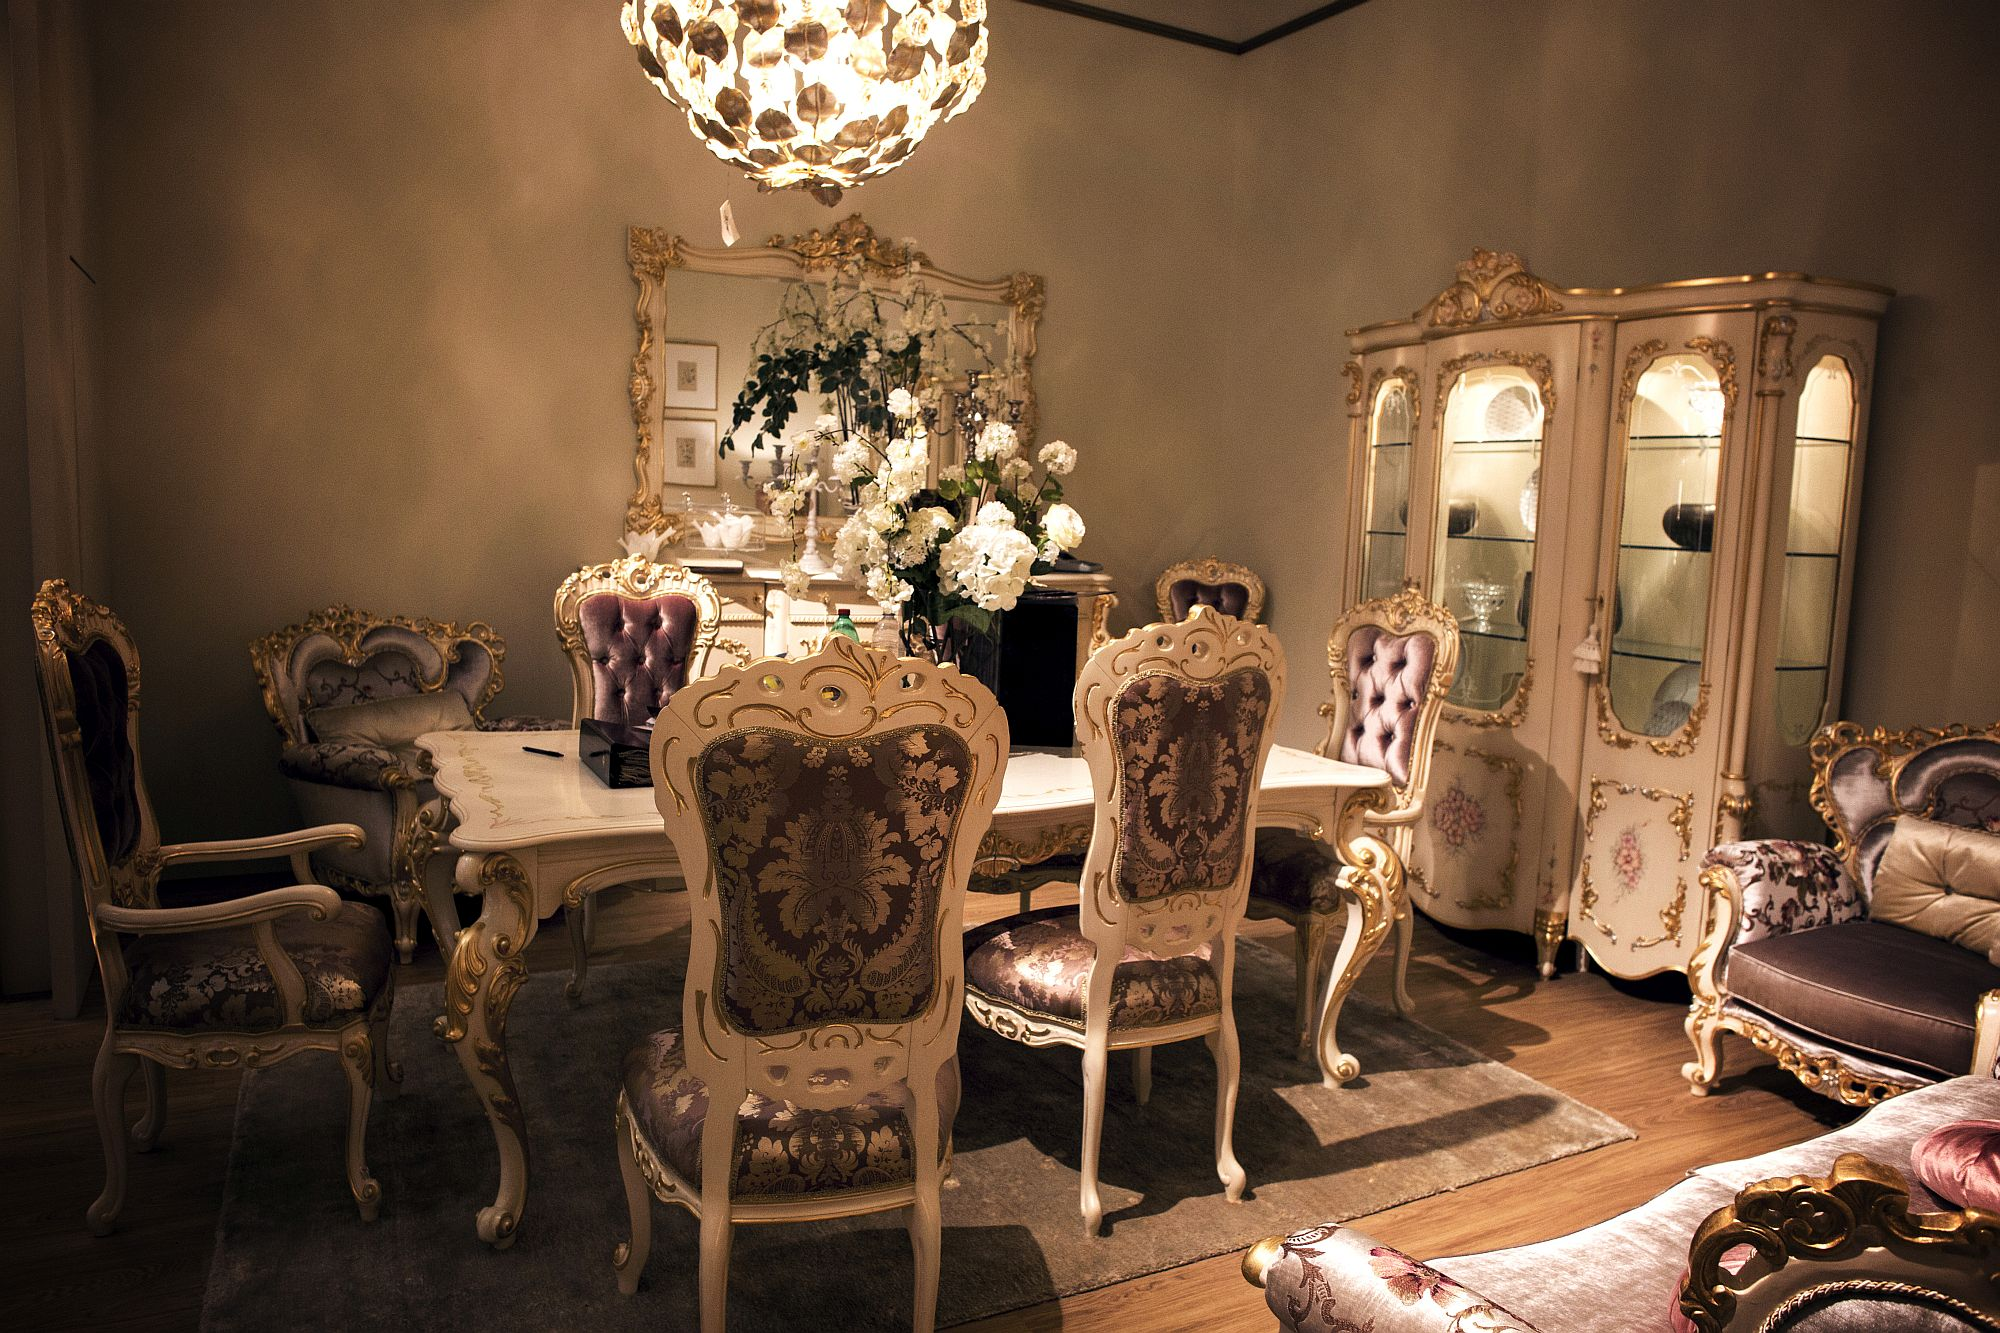 Classic-cabinet-dining-table-chairs-and-a-hint-of-purple-for-the-exquisite-dining-room